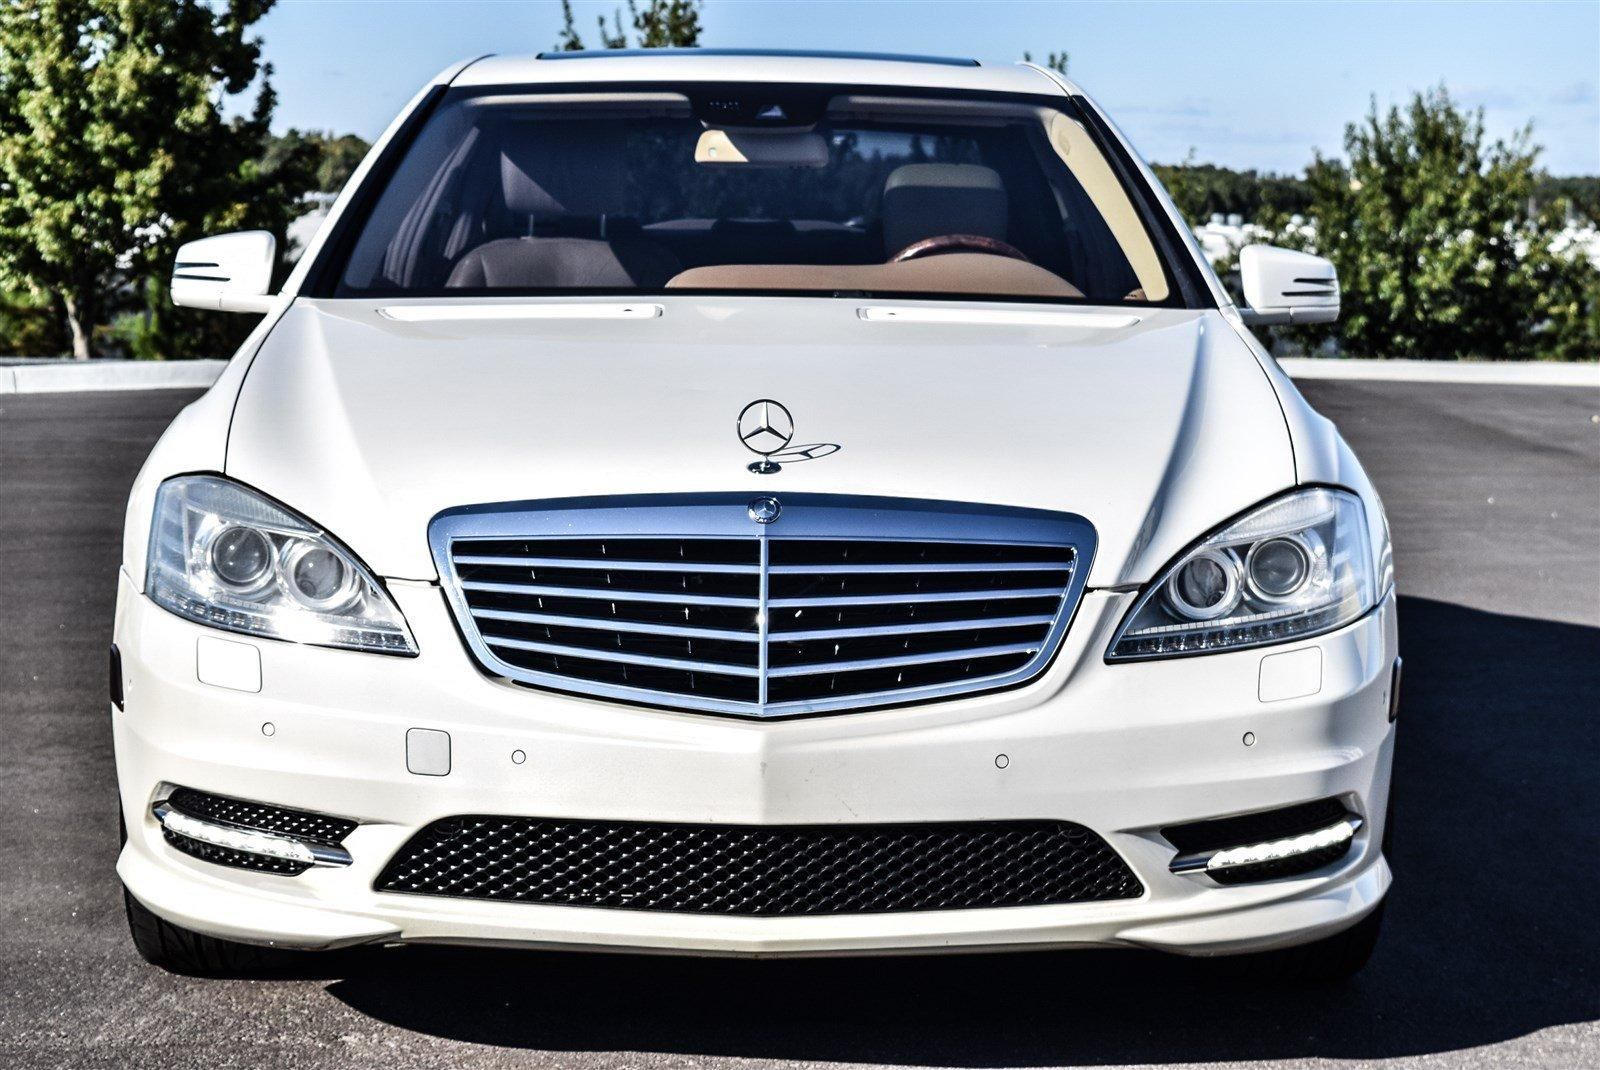 2010 mercedes benz s class s550 stock 335738 for sale for Used s550 mercedes benz